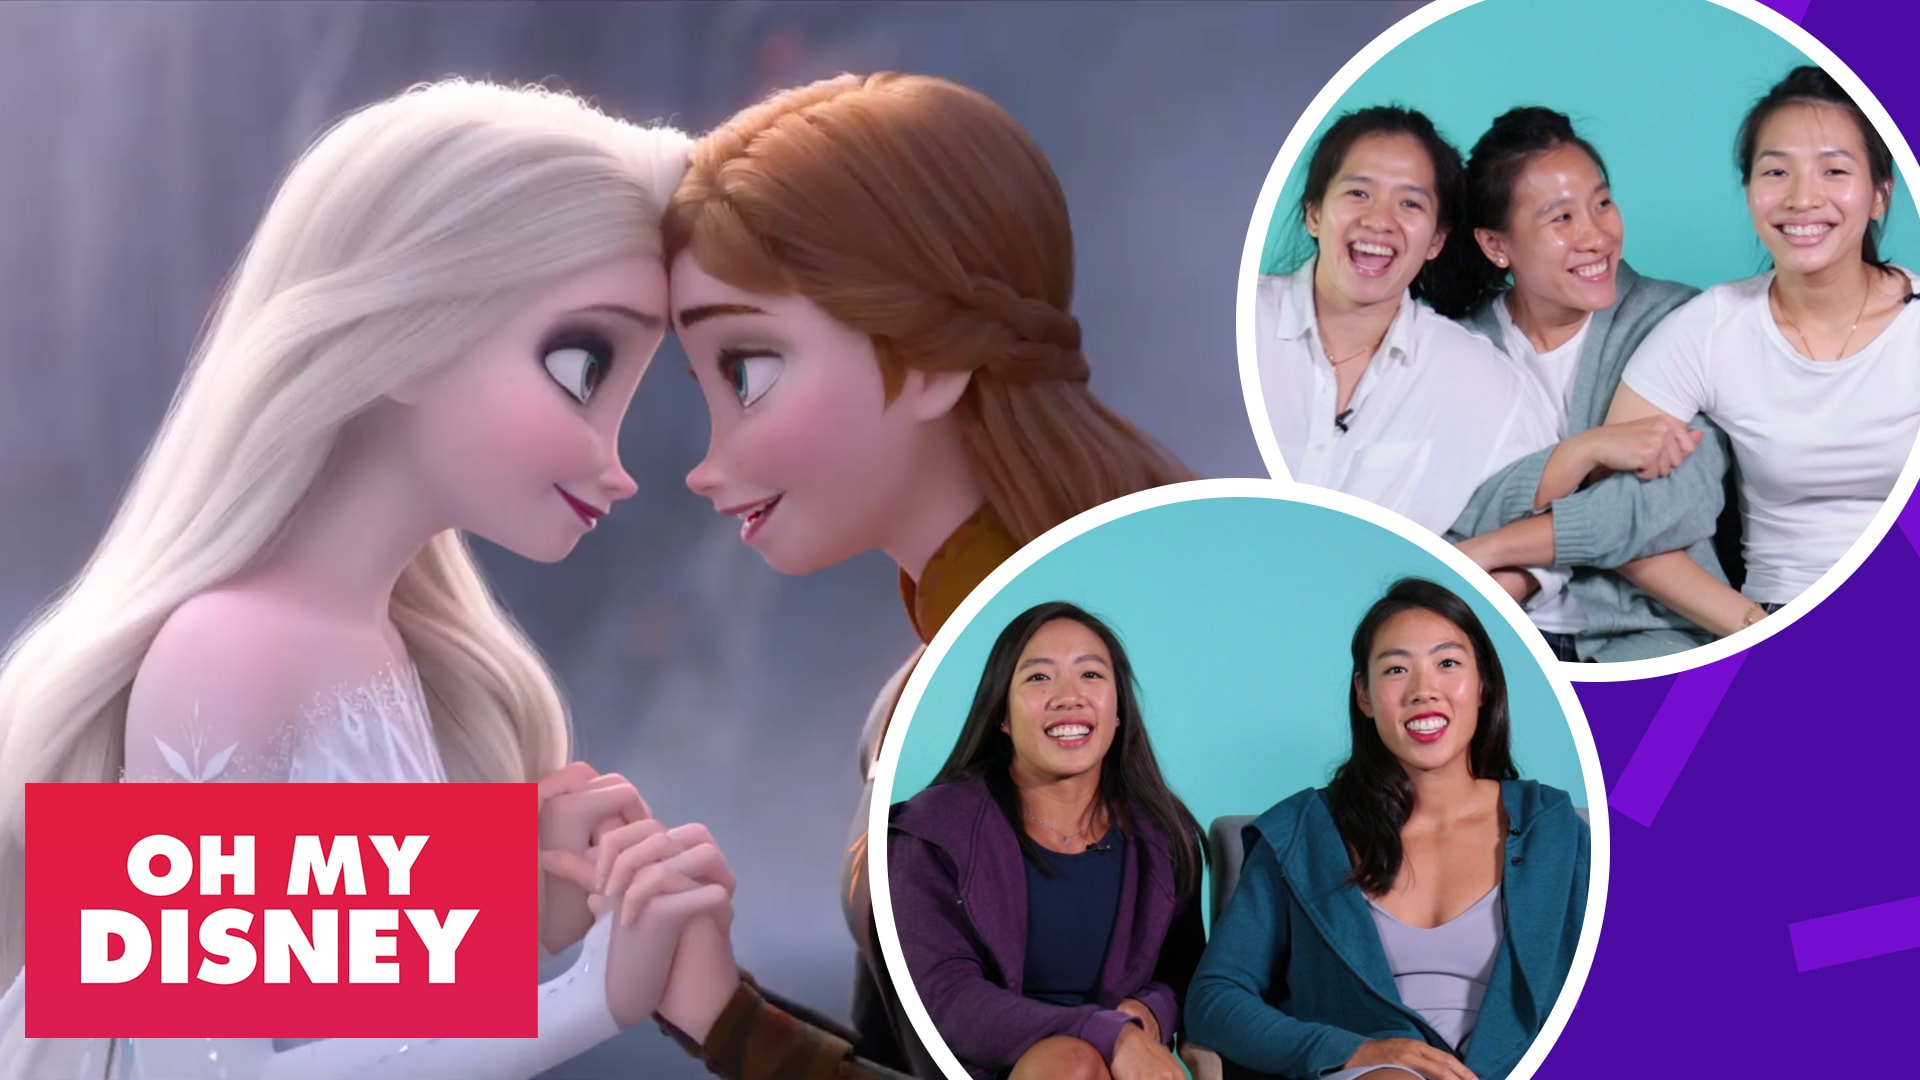 These Athlete Sisters' Stories Remind Us of Elsa And Anna's Relationship